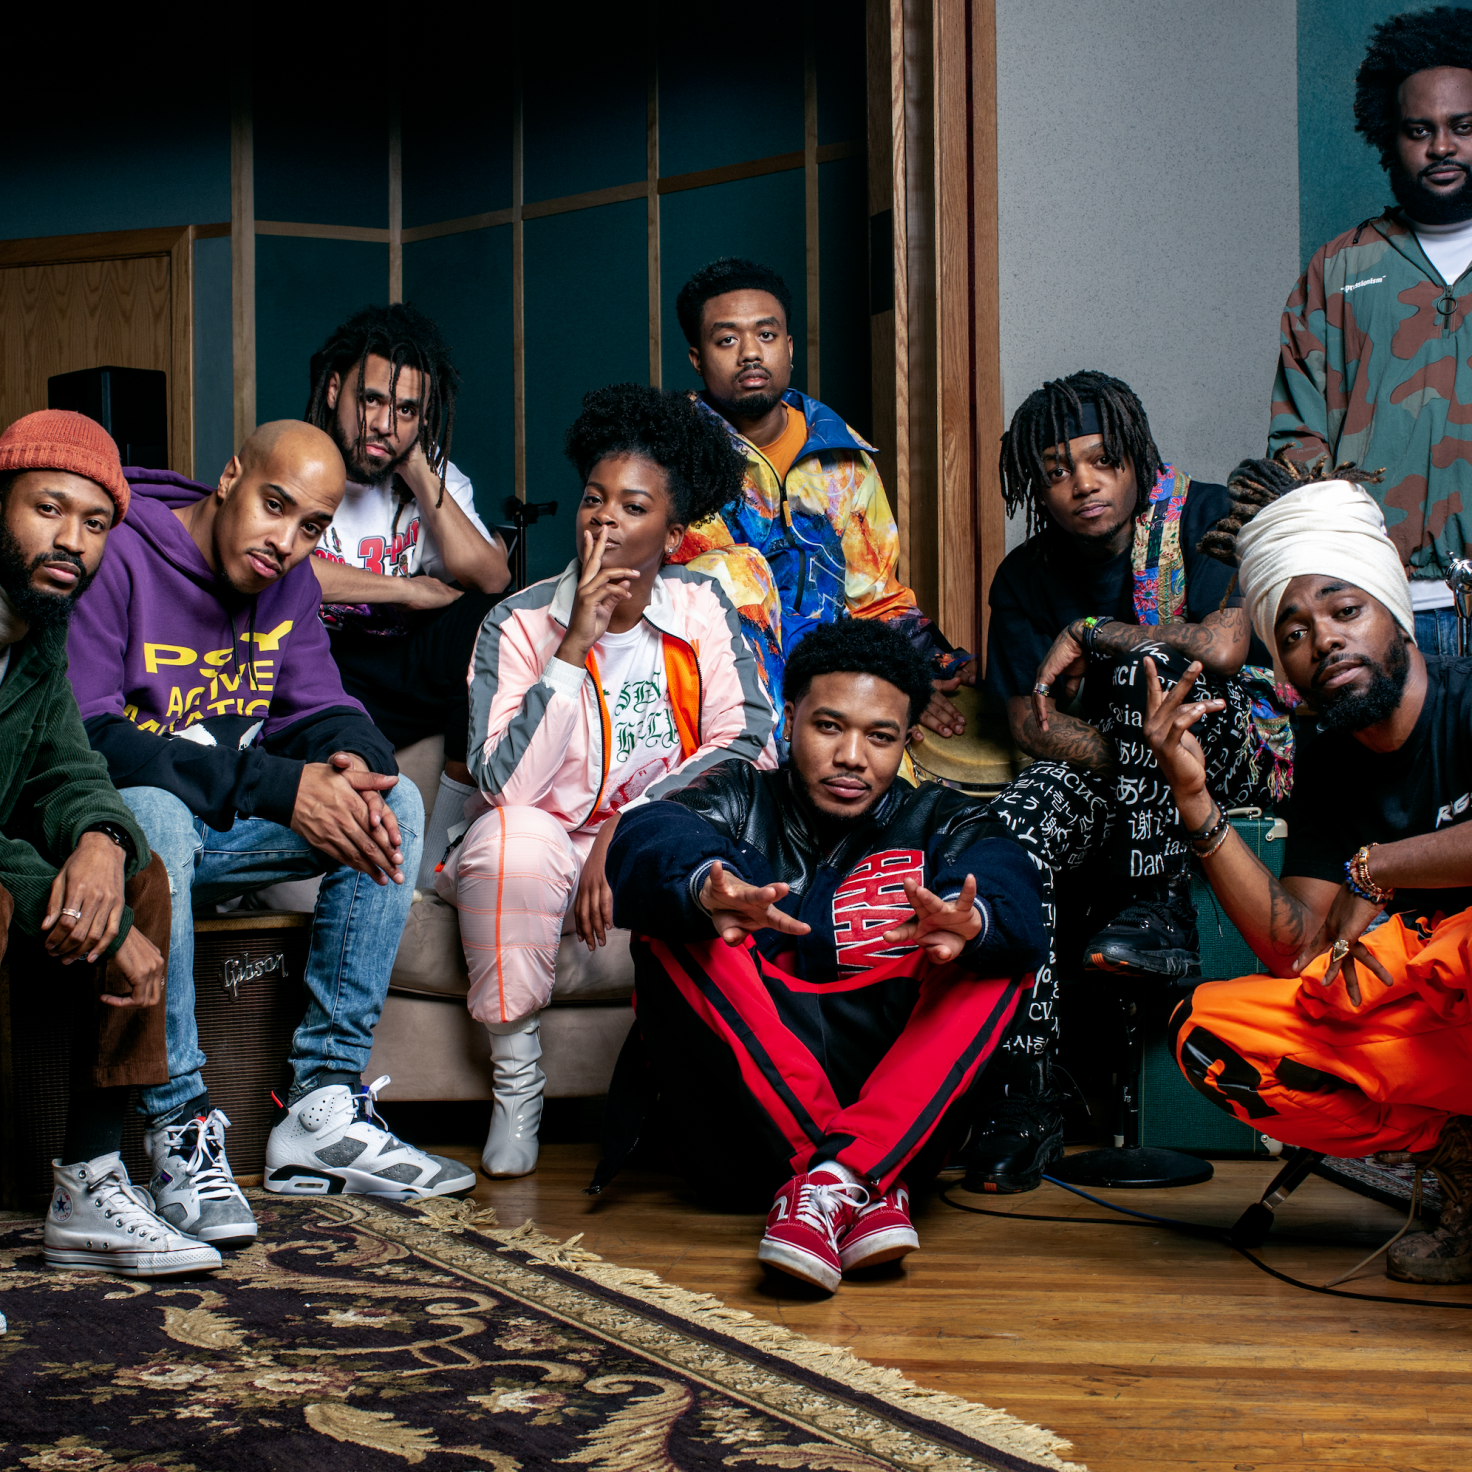 J. Cole's Dreamville Drops Deluxe 'Revenge Of The Dreamers III' With New Songs From Ari Lennox And EARTHGANG